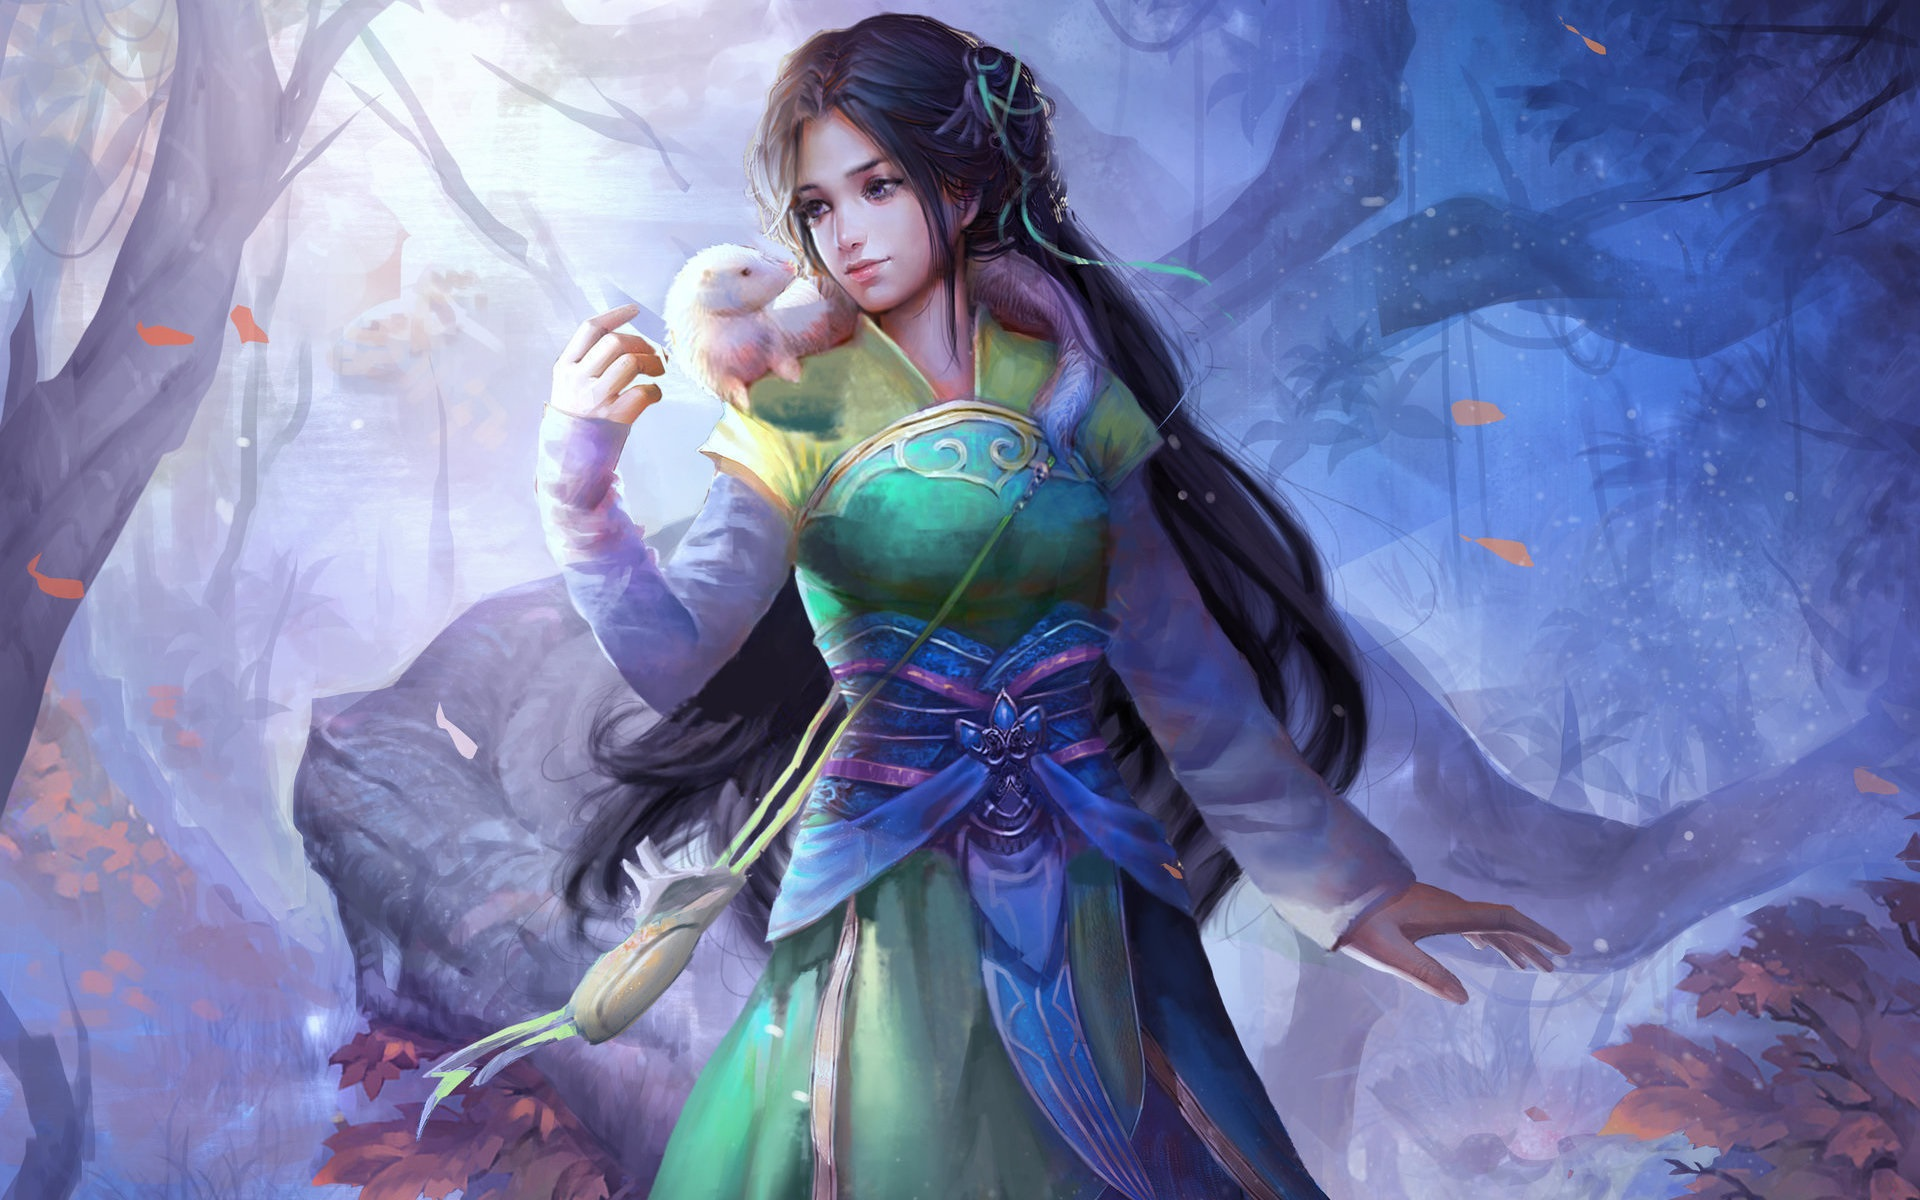 Beautiful Chinese Girl Paintings Widescreen Wallpaper Wallpaper Beautiful Chinese Fantasy Girl Retro Style